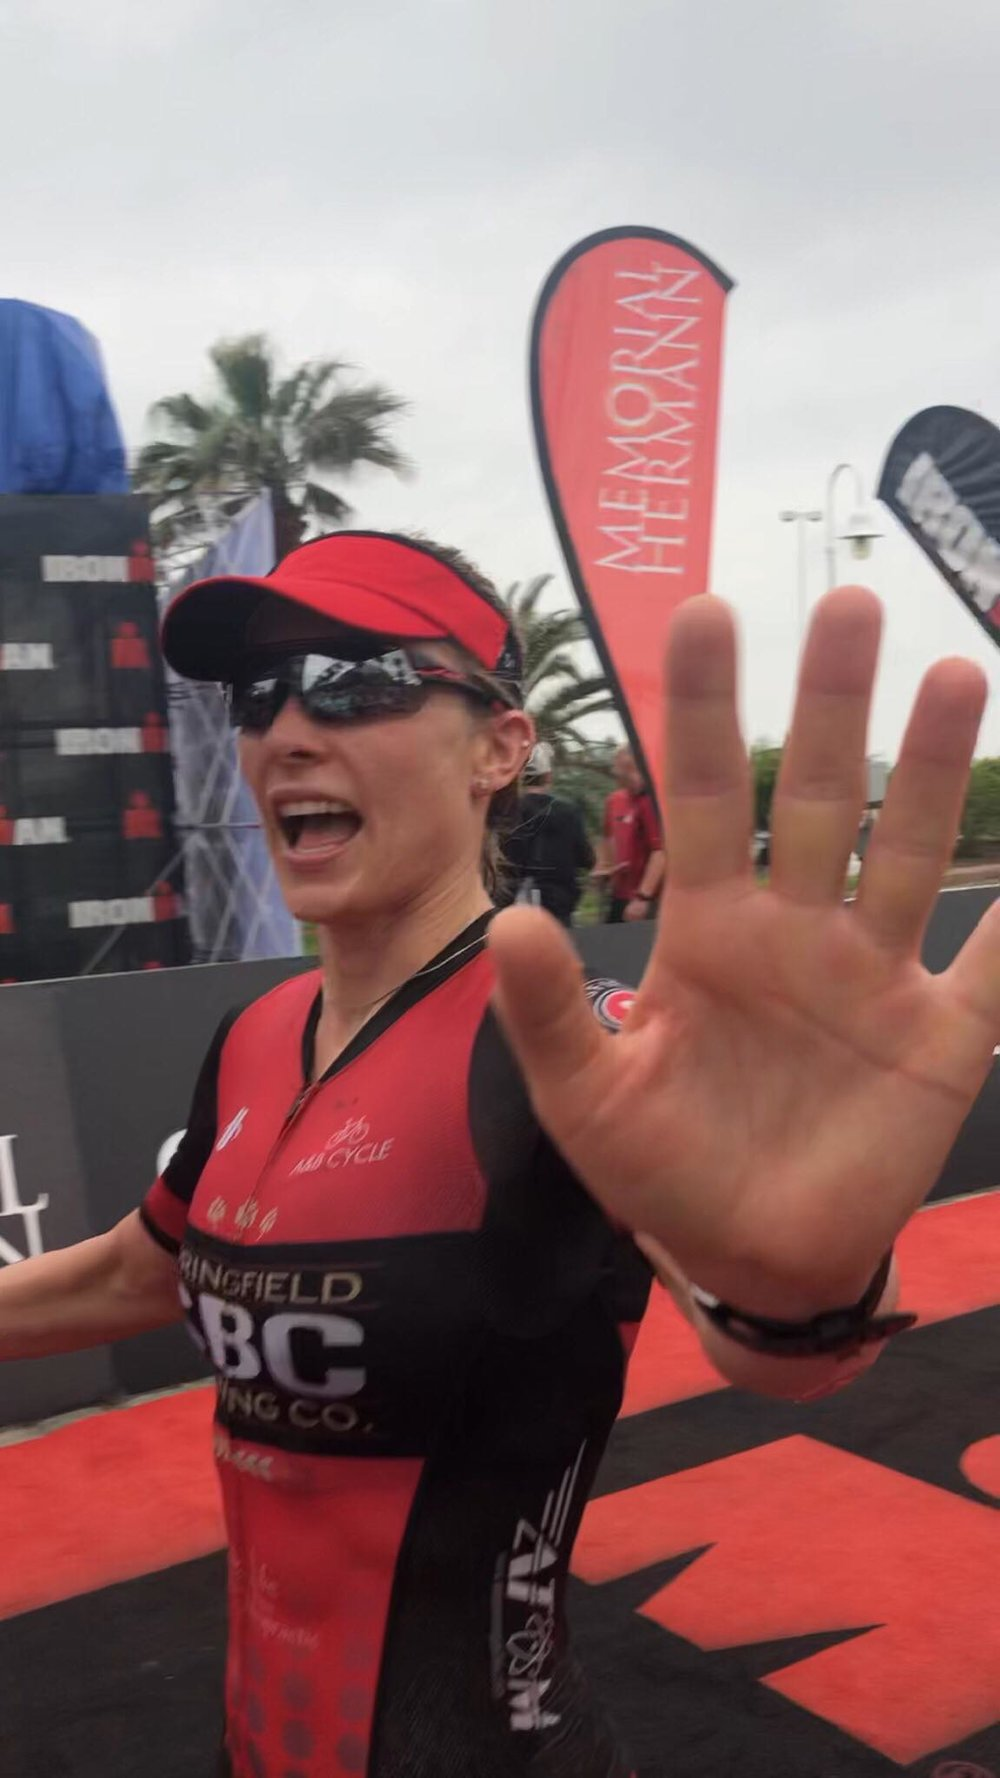 Coach_Terry_Wilson_Pursuit_of_The_Perfect_Race_IRONMAN_70.3_Texas_Danielle_Dingman_Finish_1.jpg